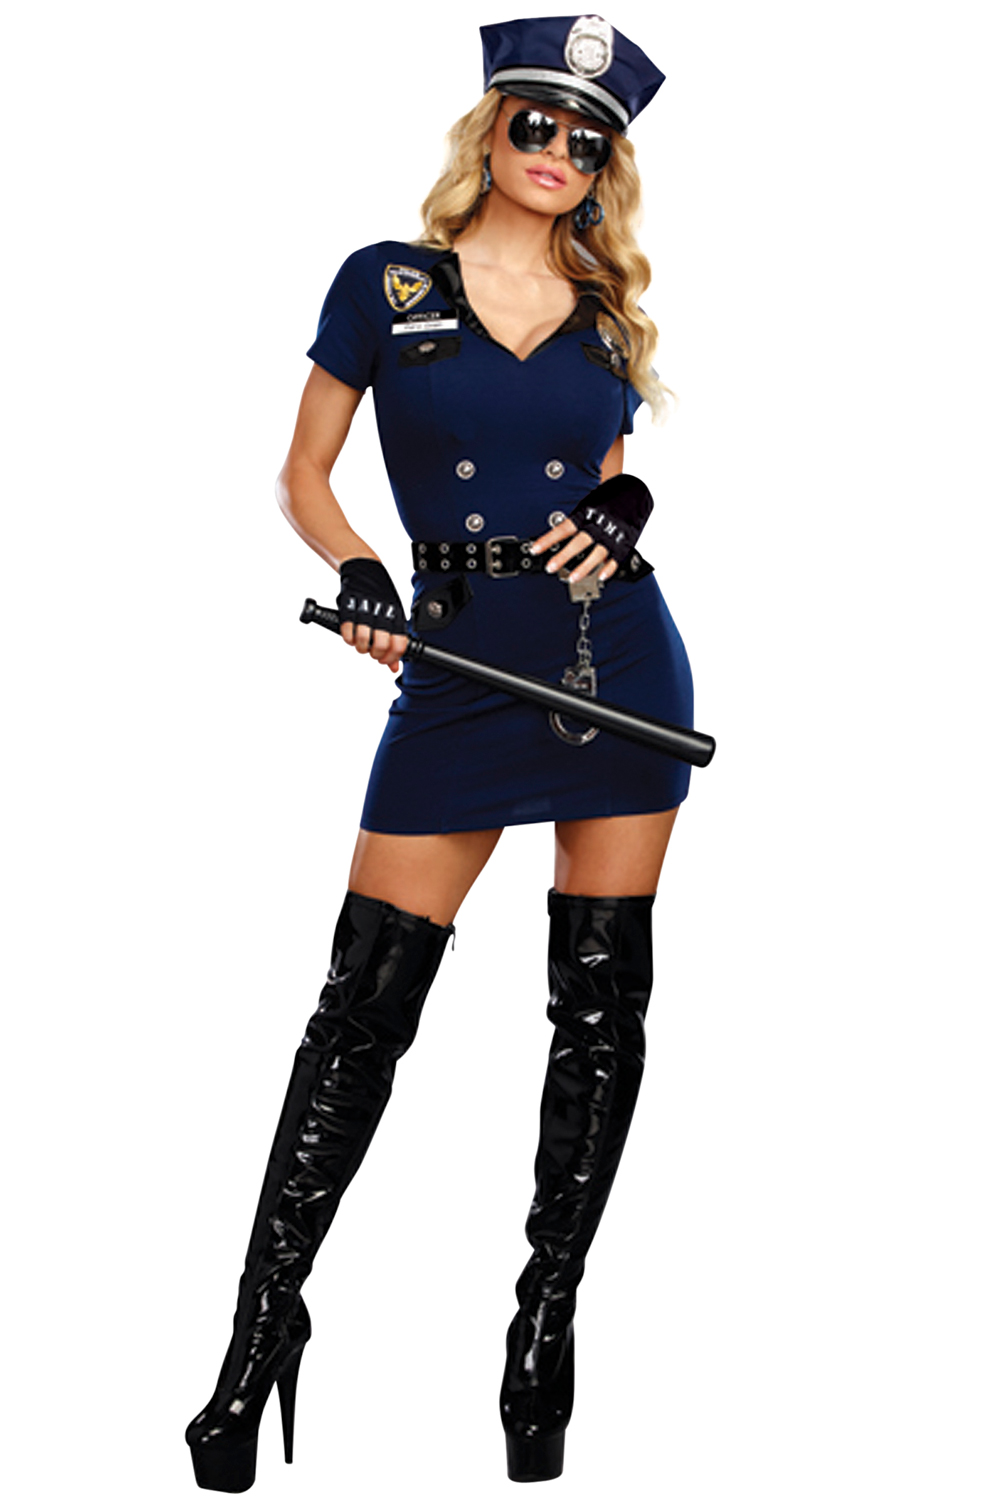 Officer Pat U. Down Adult Costume  sc 1 st  Pure Costumes & Police Costumes - PureCostumes.com